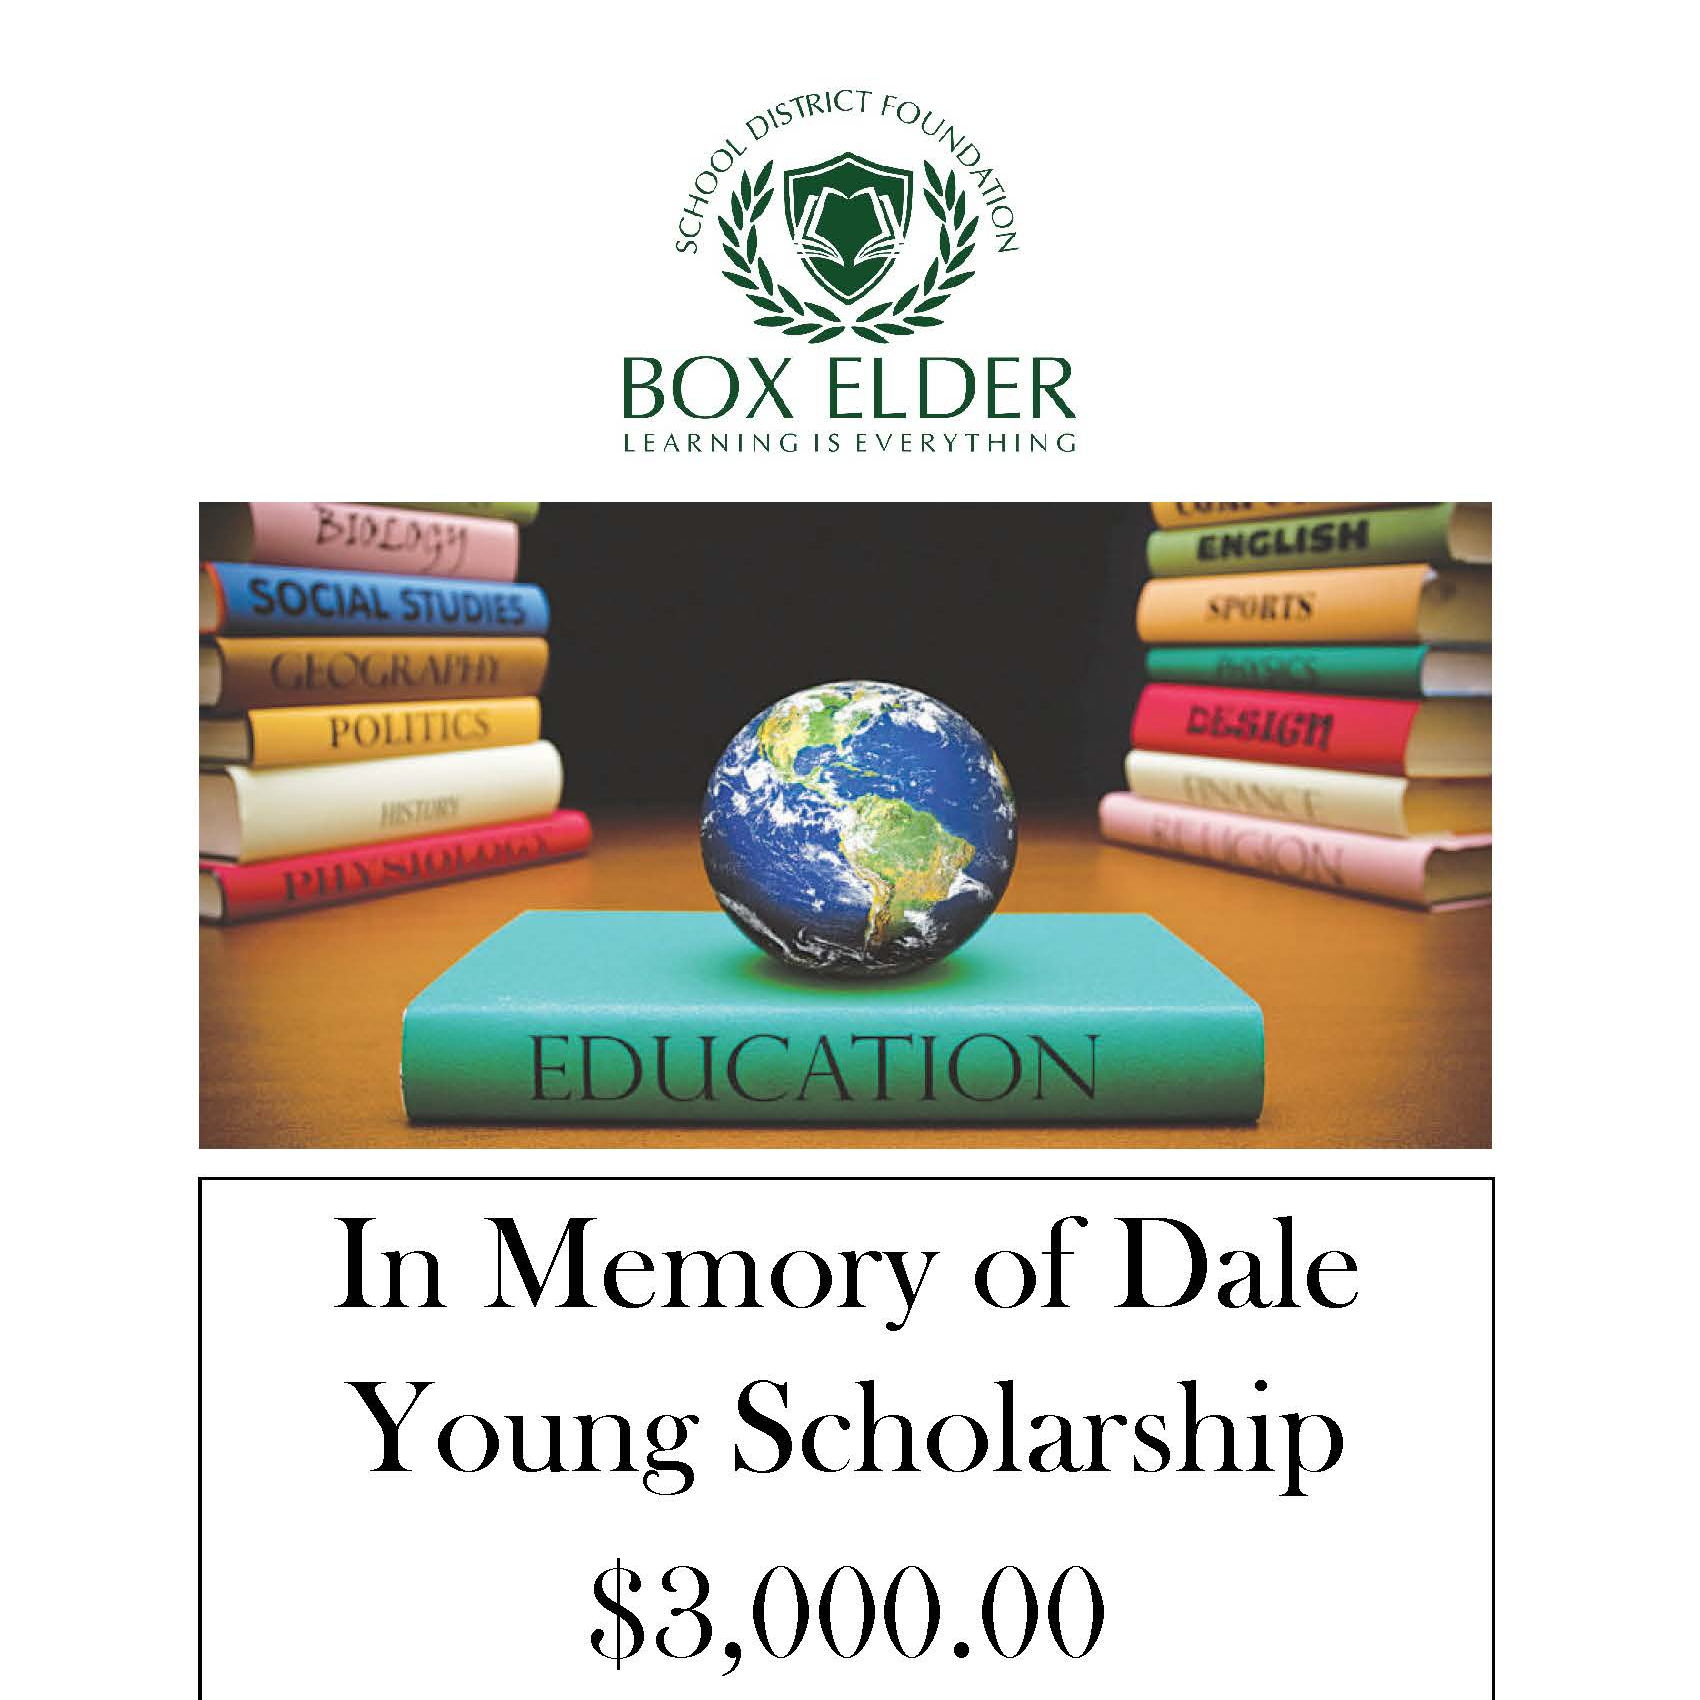 In Memory of Dale Young Scholarship